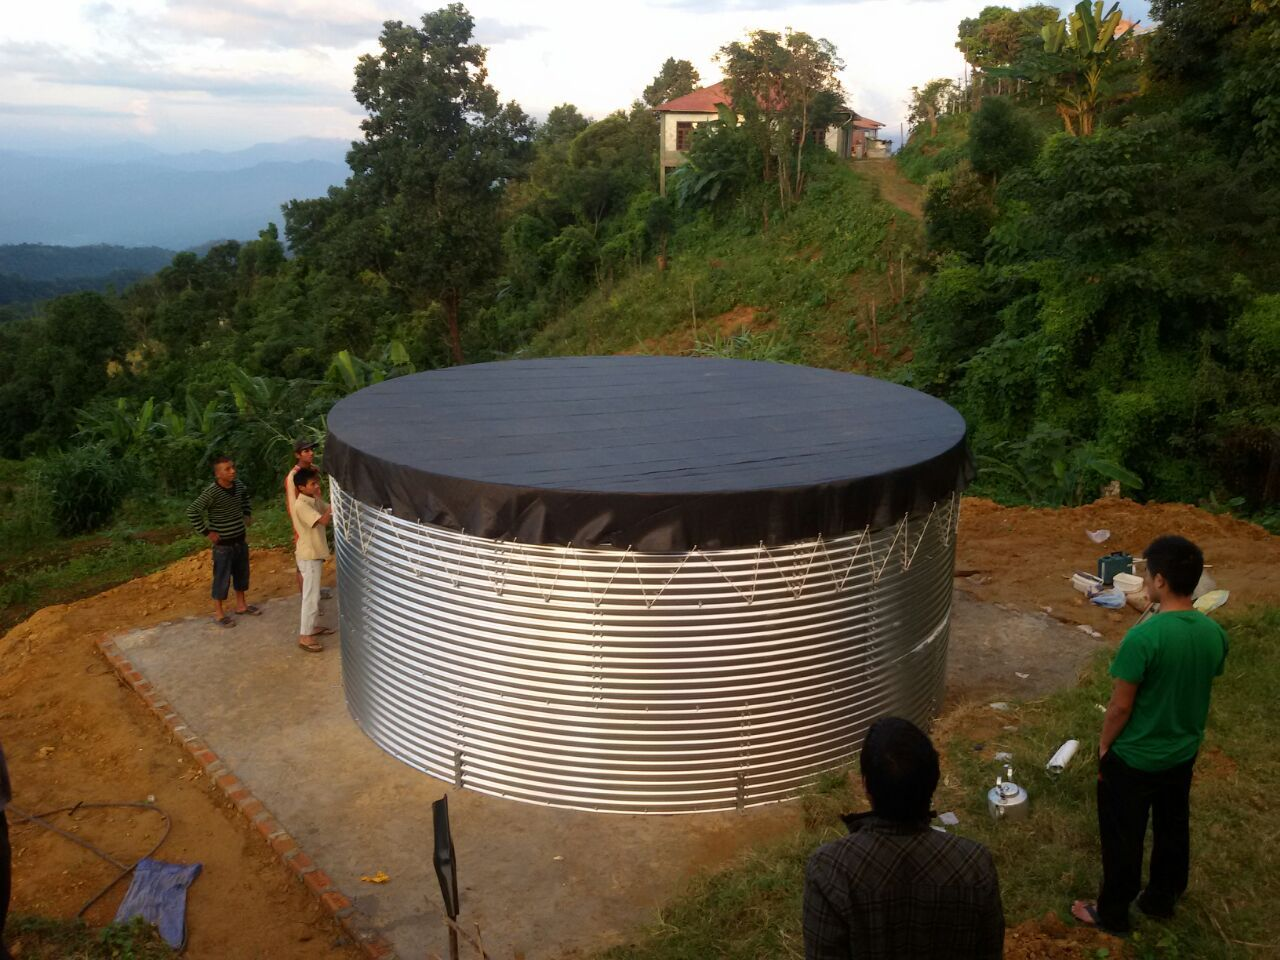 We at Wetcomb leading water solution company provide Drinking Water Tank,Tank,Water Tank,Waste Water Tank, Galvanized Water Tank all at the best quality products.